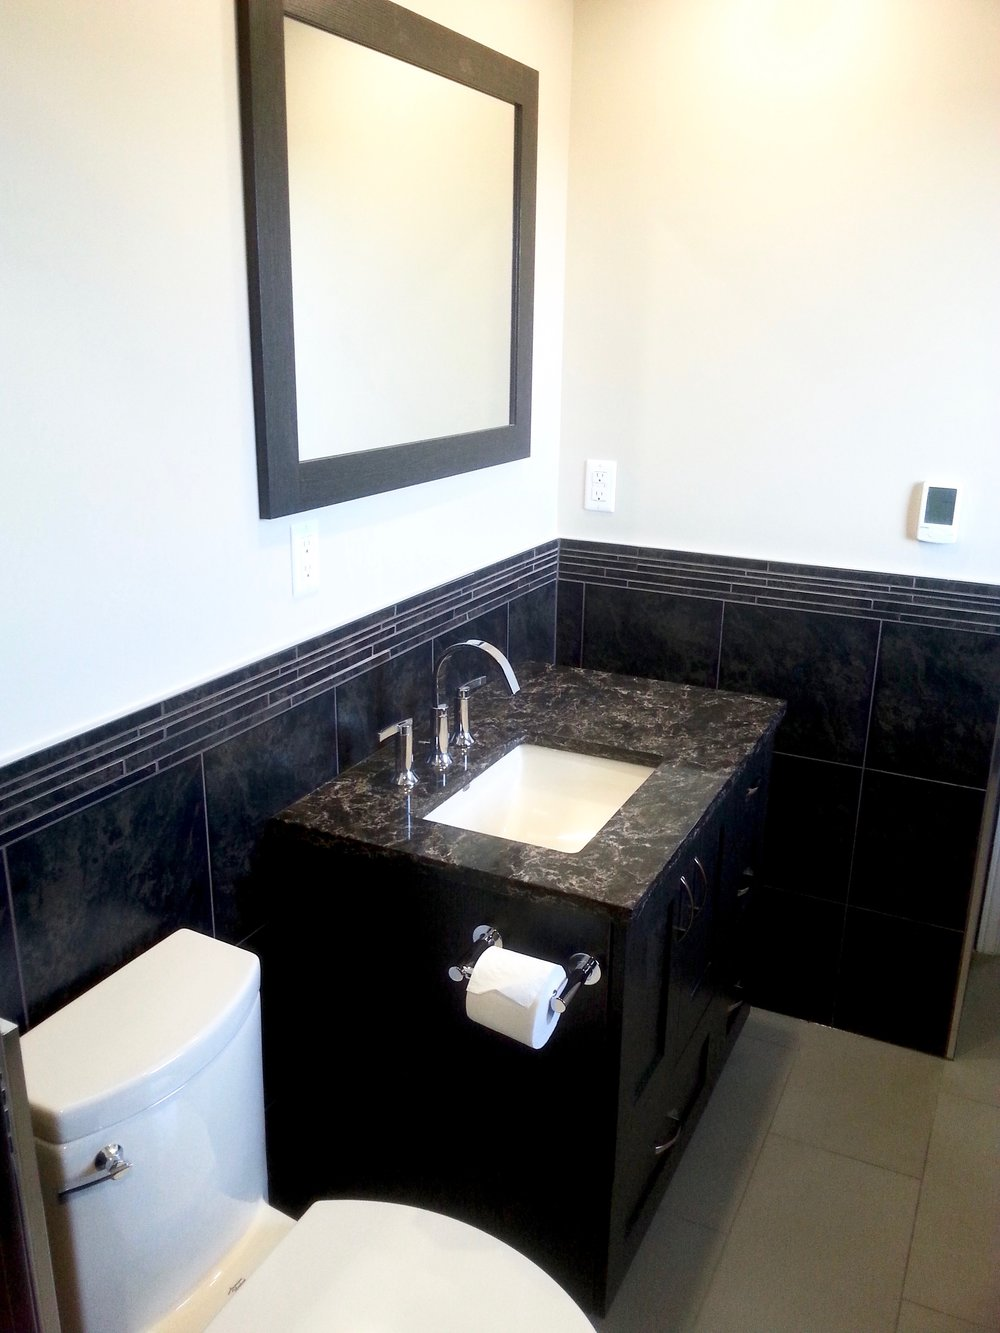 Customer vanity and wall tile